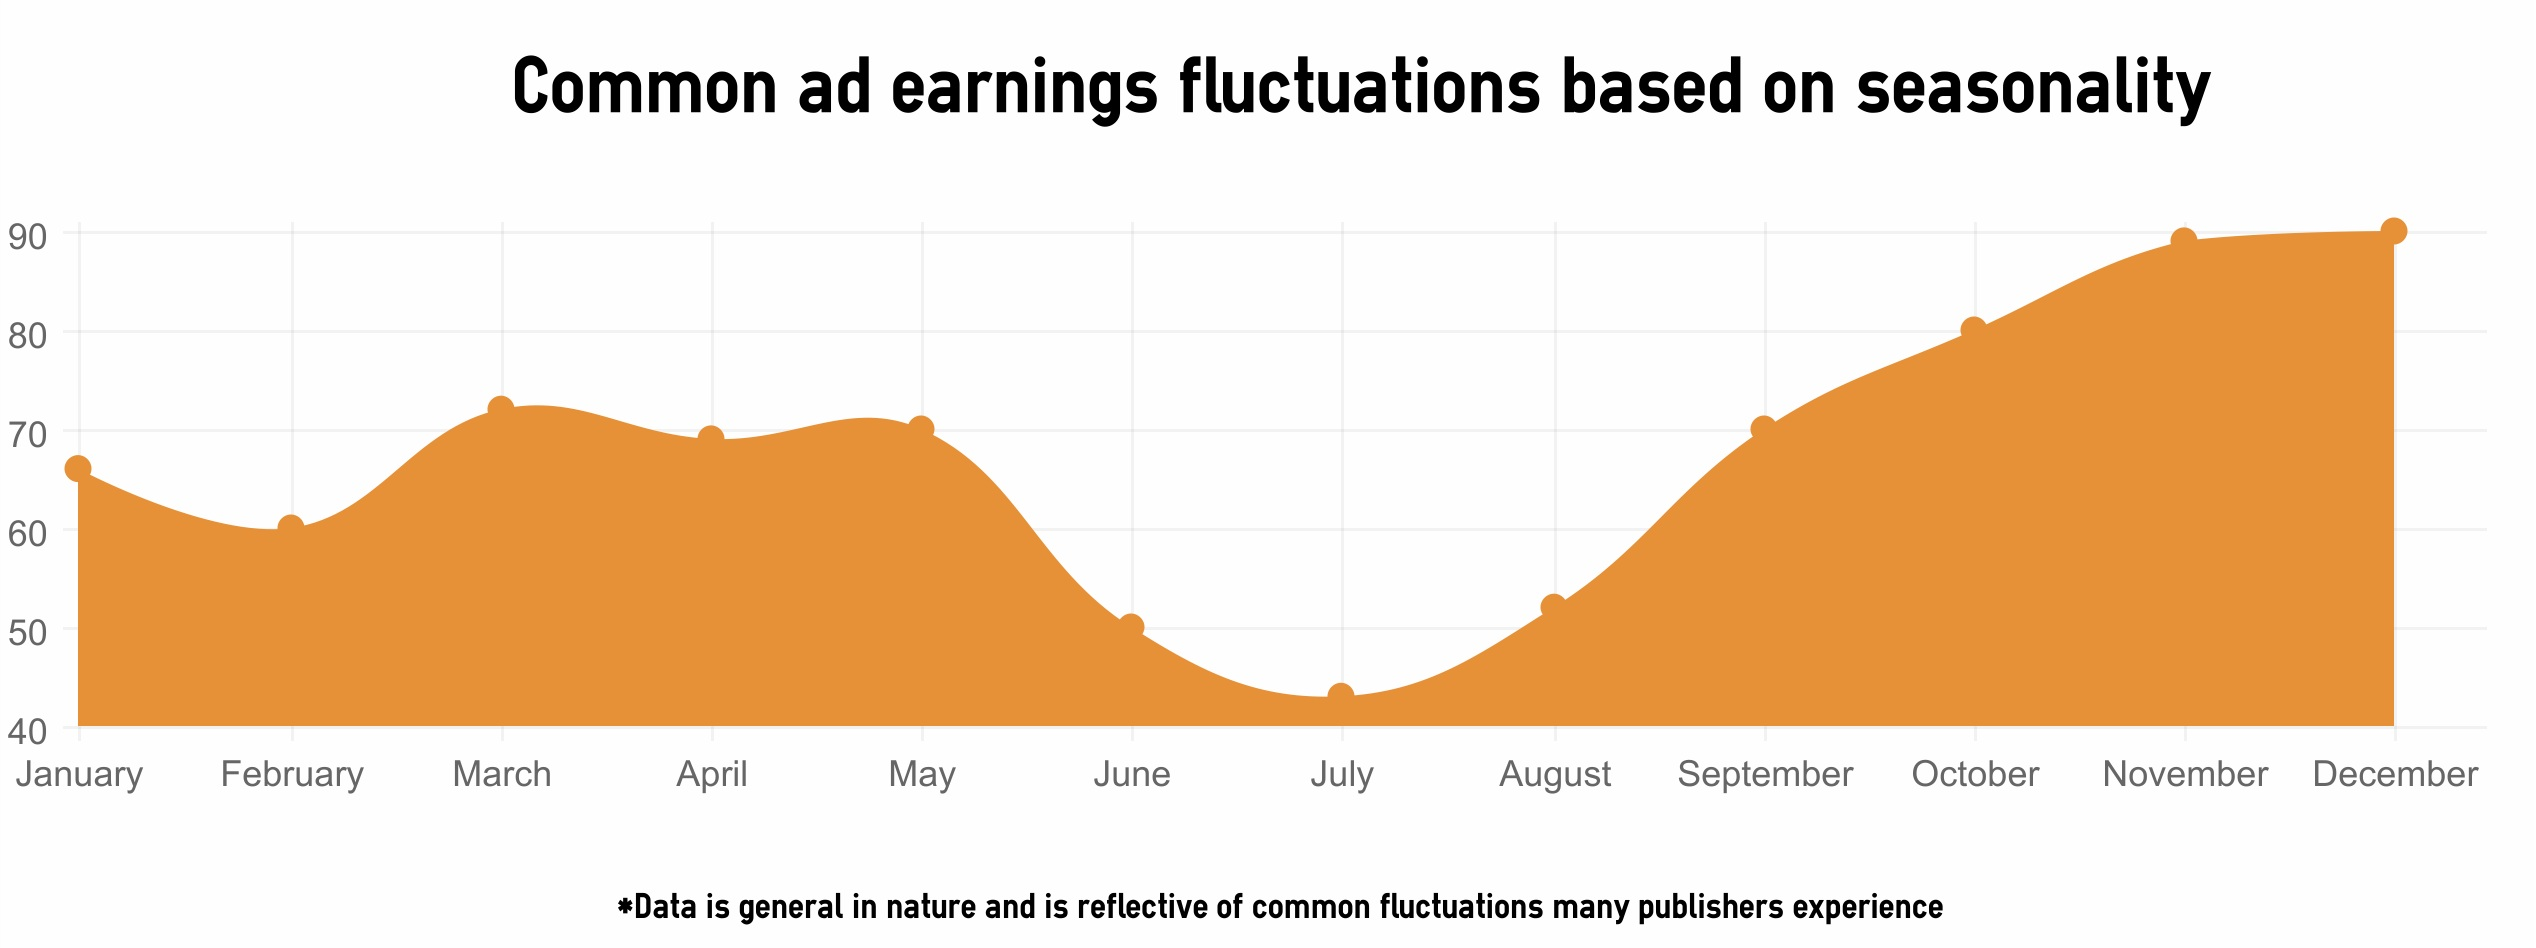 ad earnings fluctuations